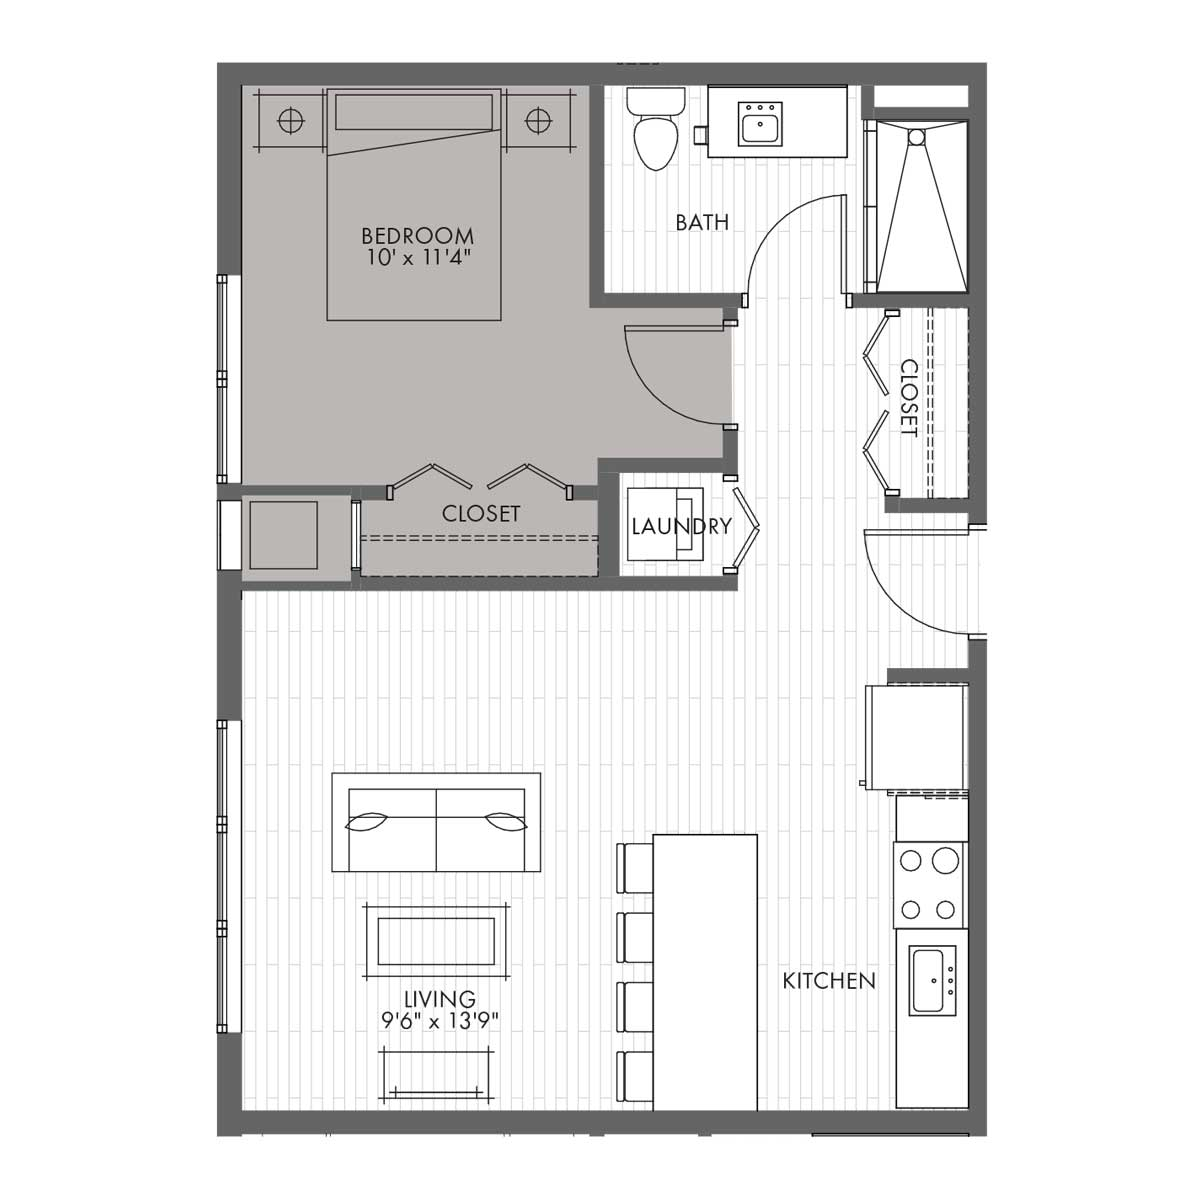 Penthouse One Bedroom - Style 1E